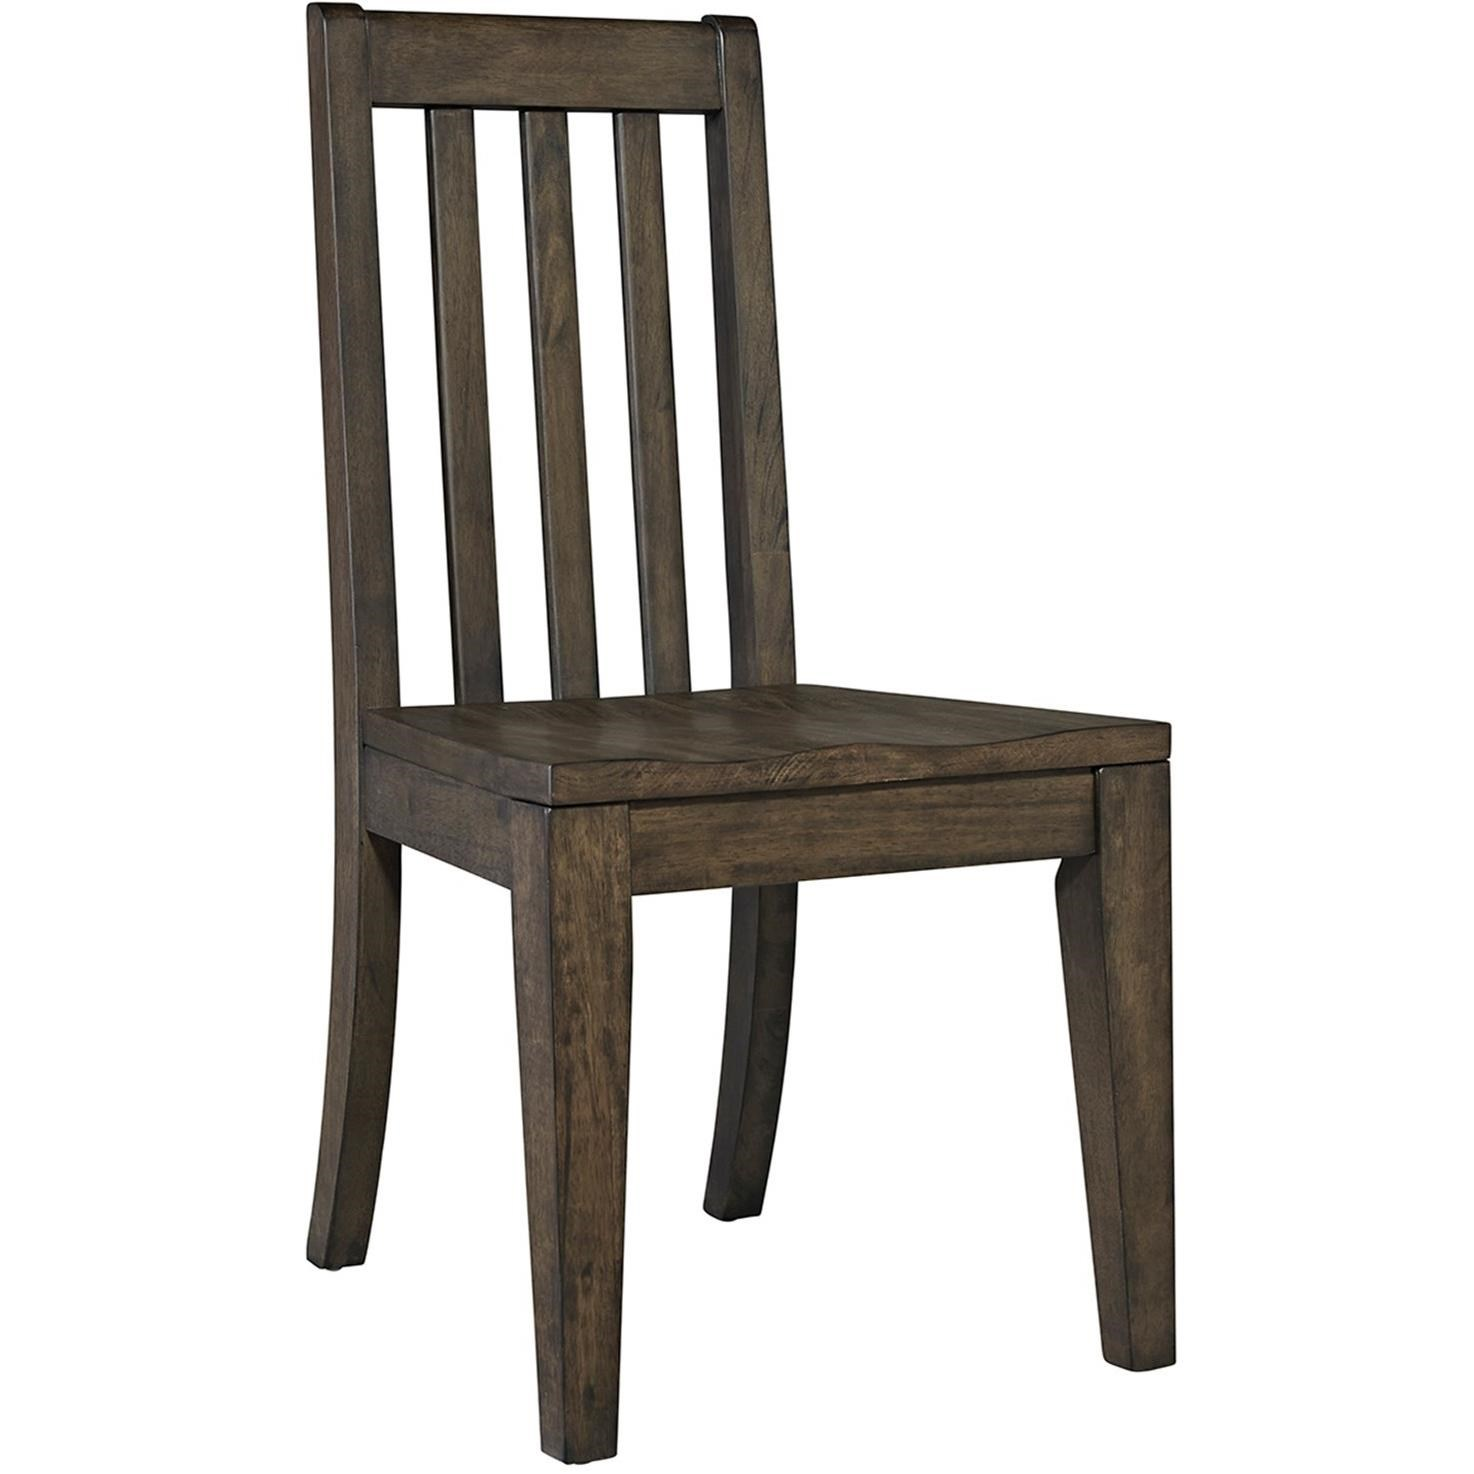 Rustic Student Chair